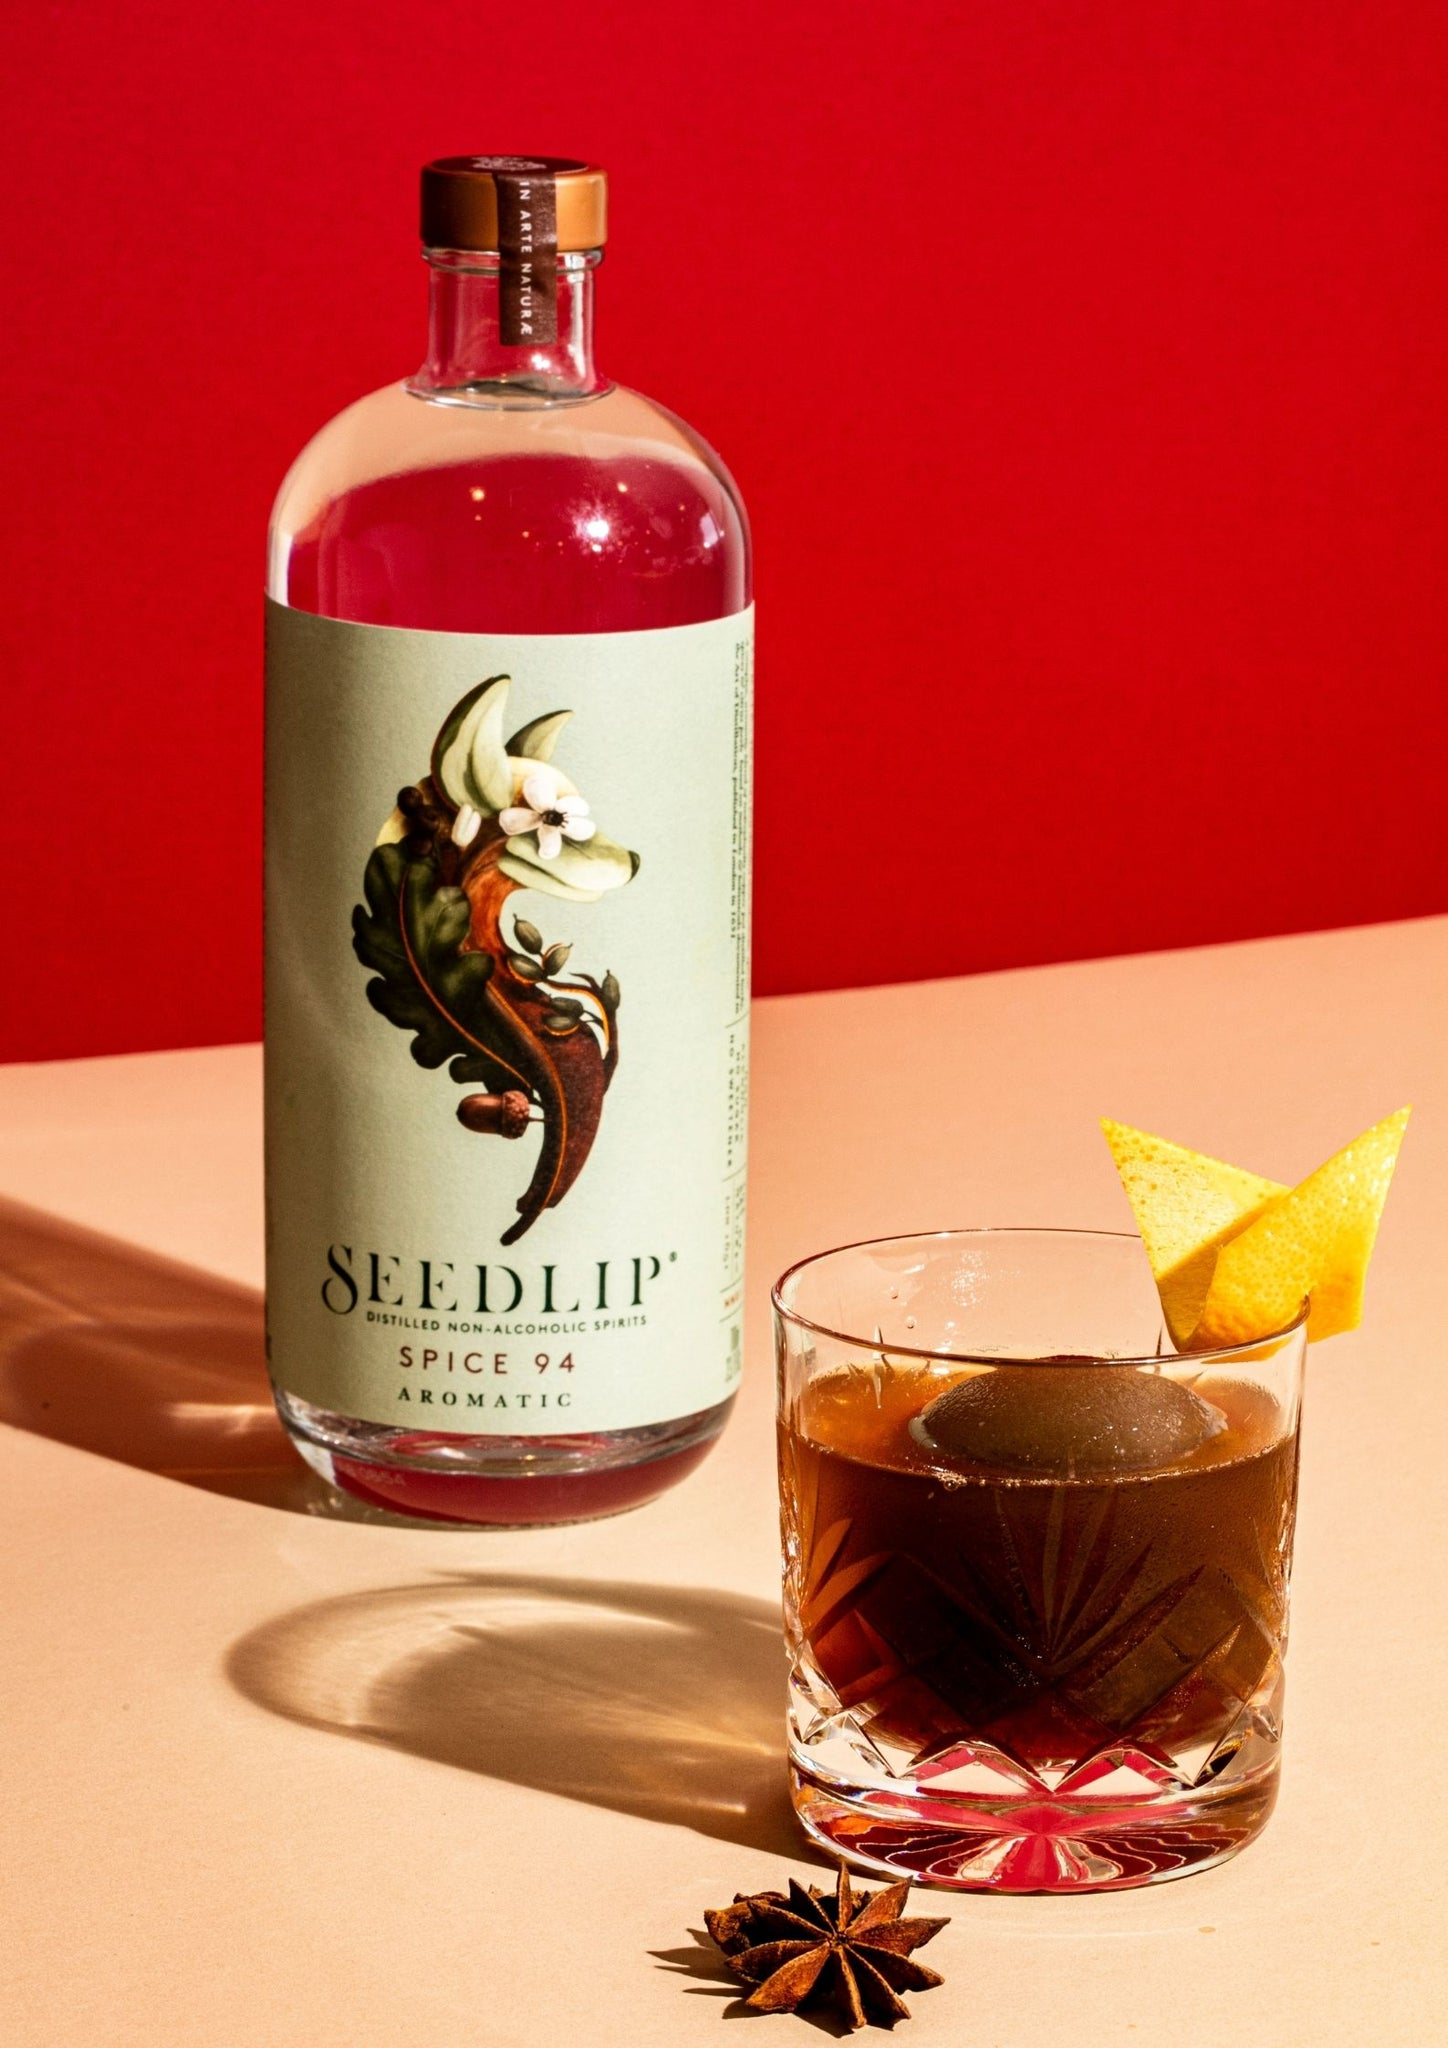 Seedlip Spice Merry Cherry Cocktail Kit